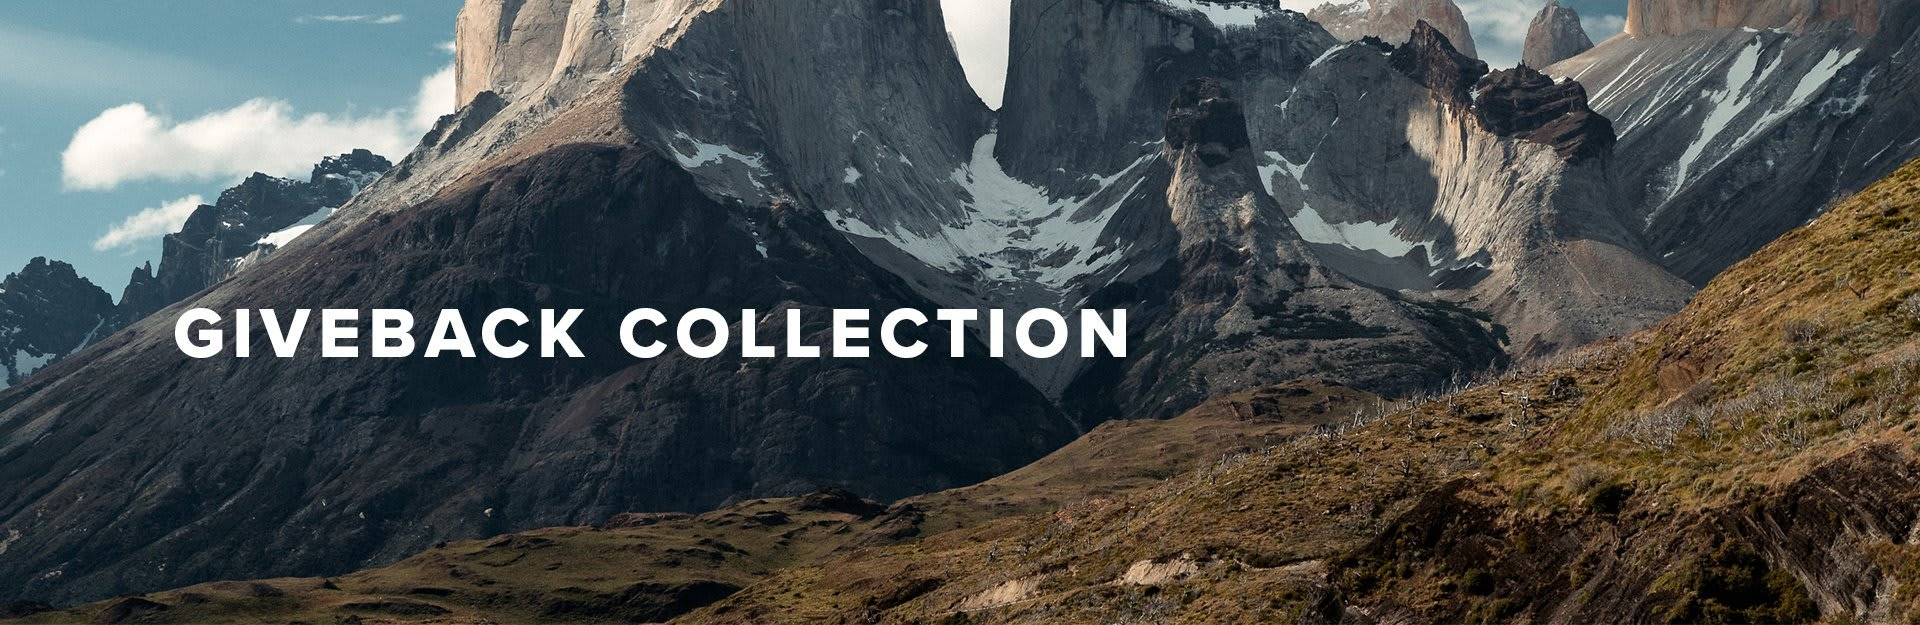 Giveback Collection, landscape of mountains with snow